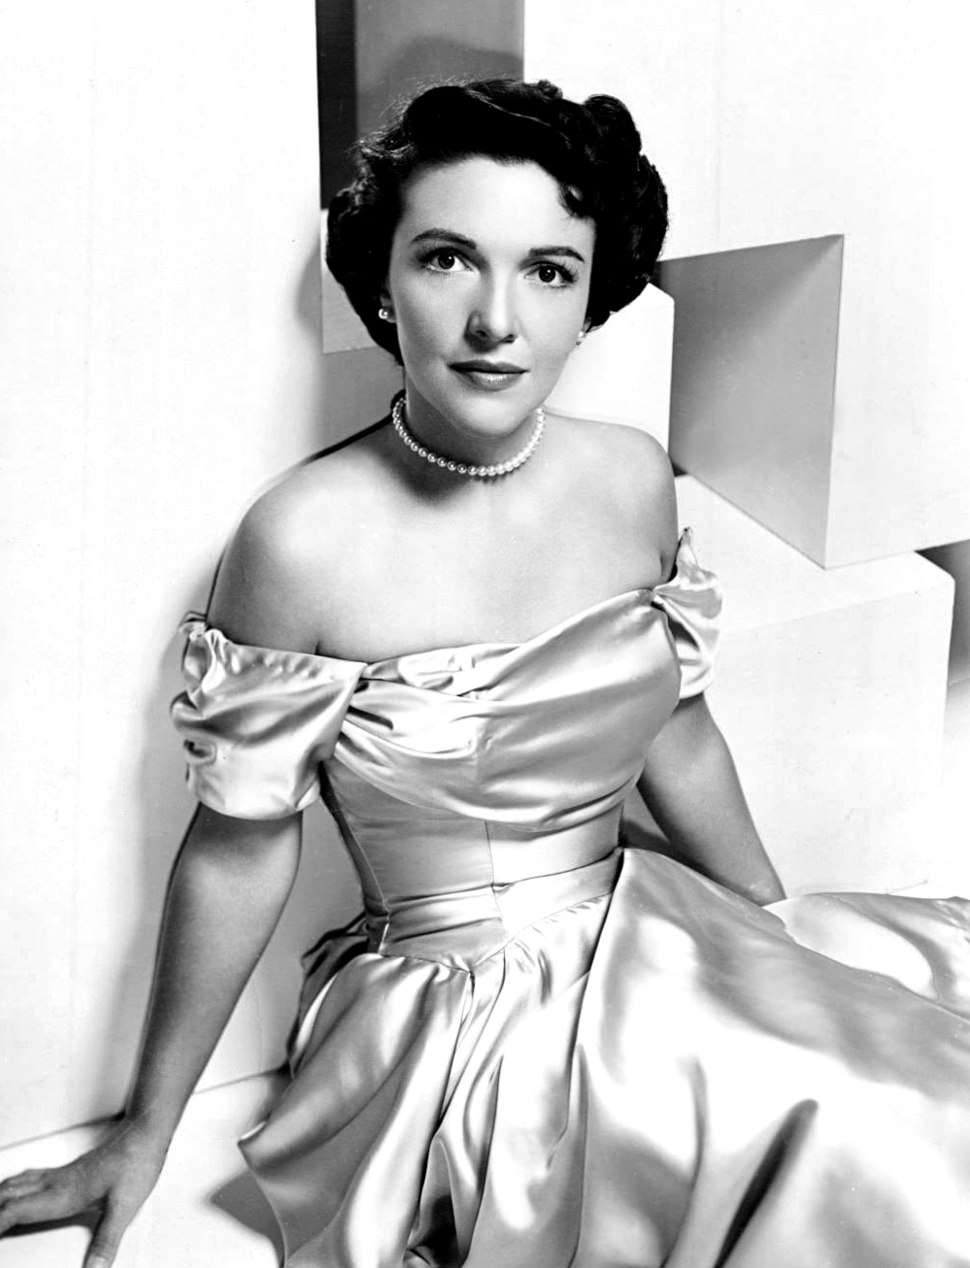 Nancy Reagan - 1950